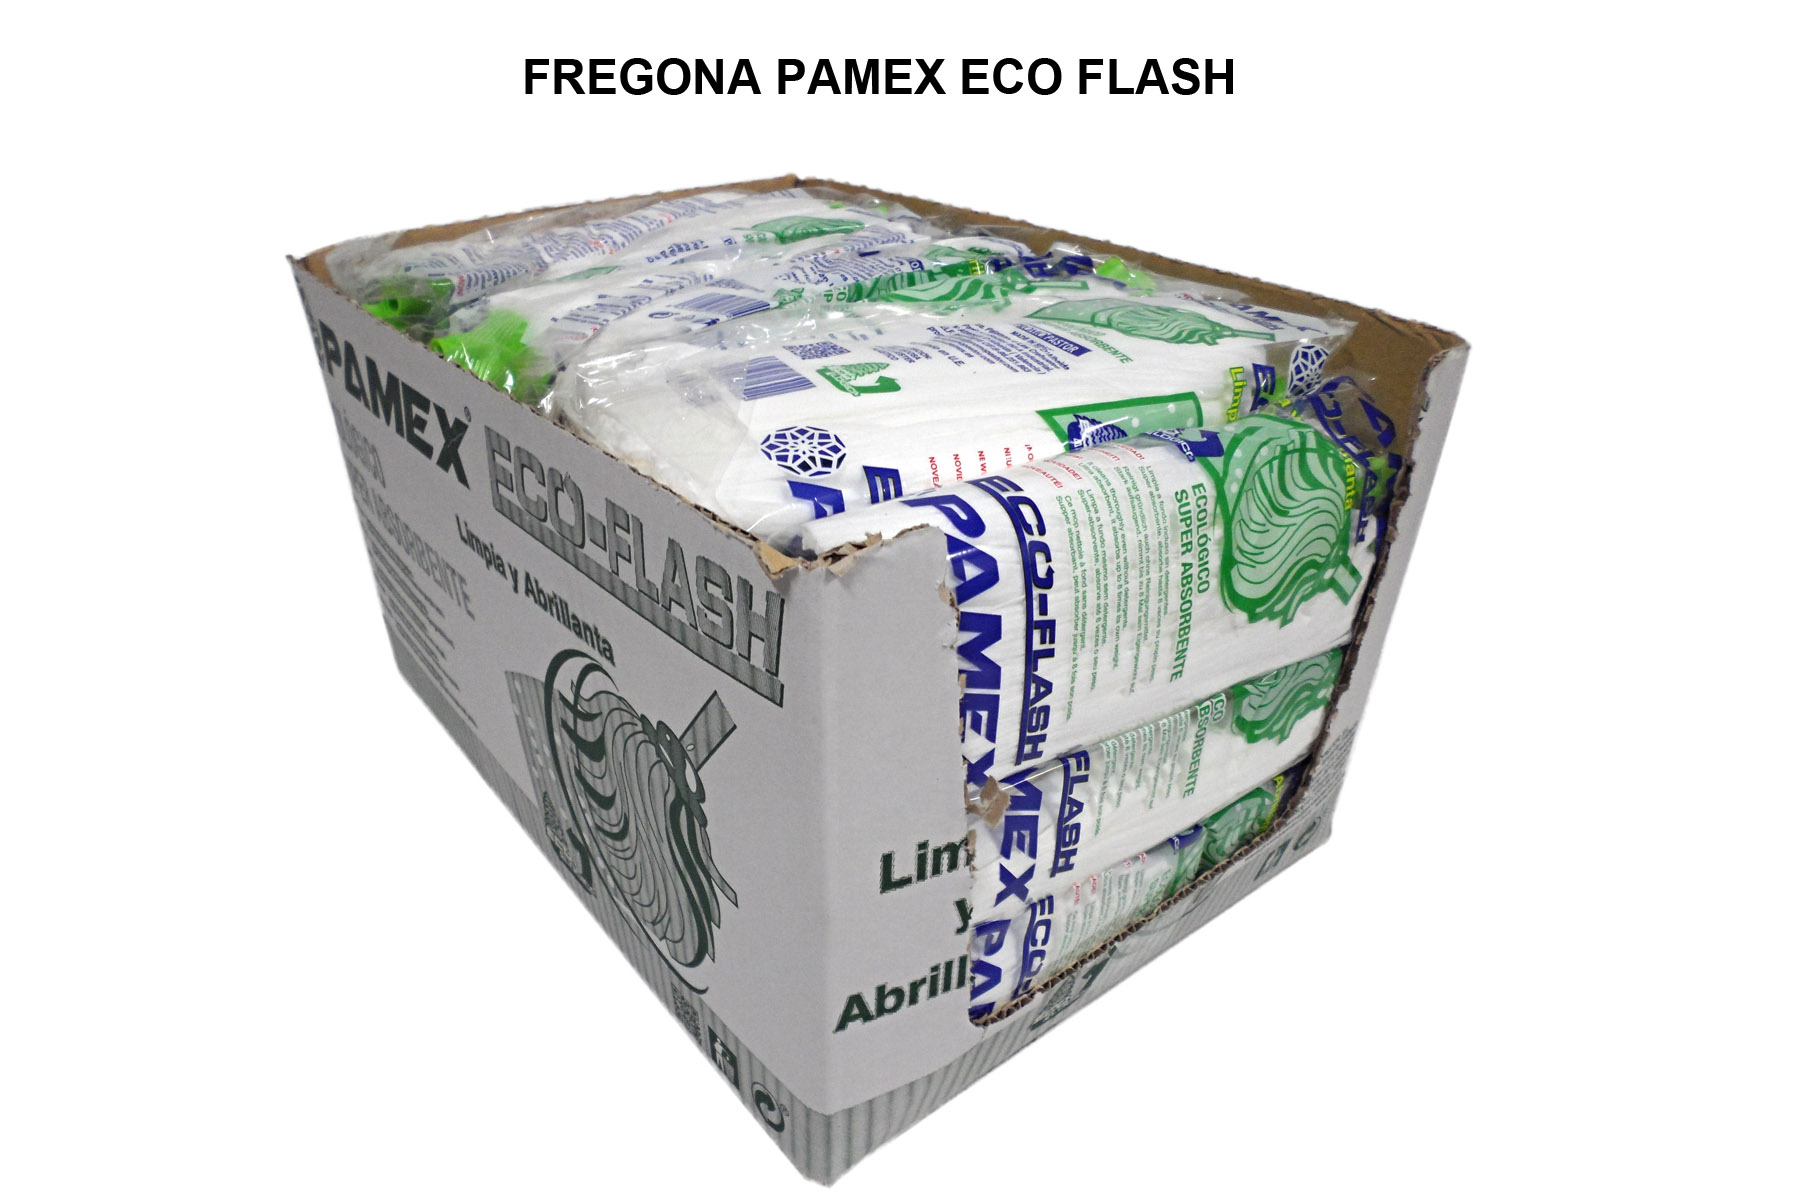 FREGONA PAMEX ECO FLASH